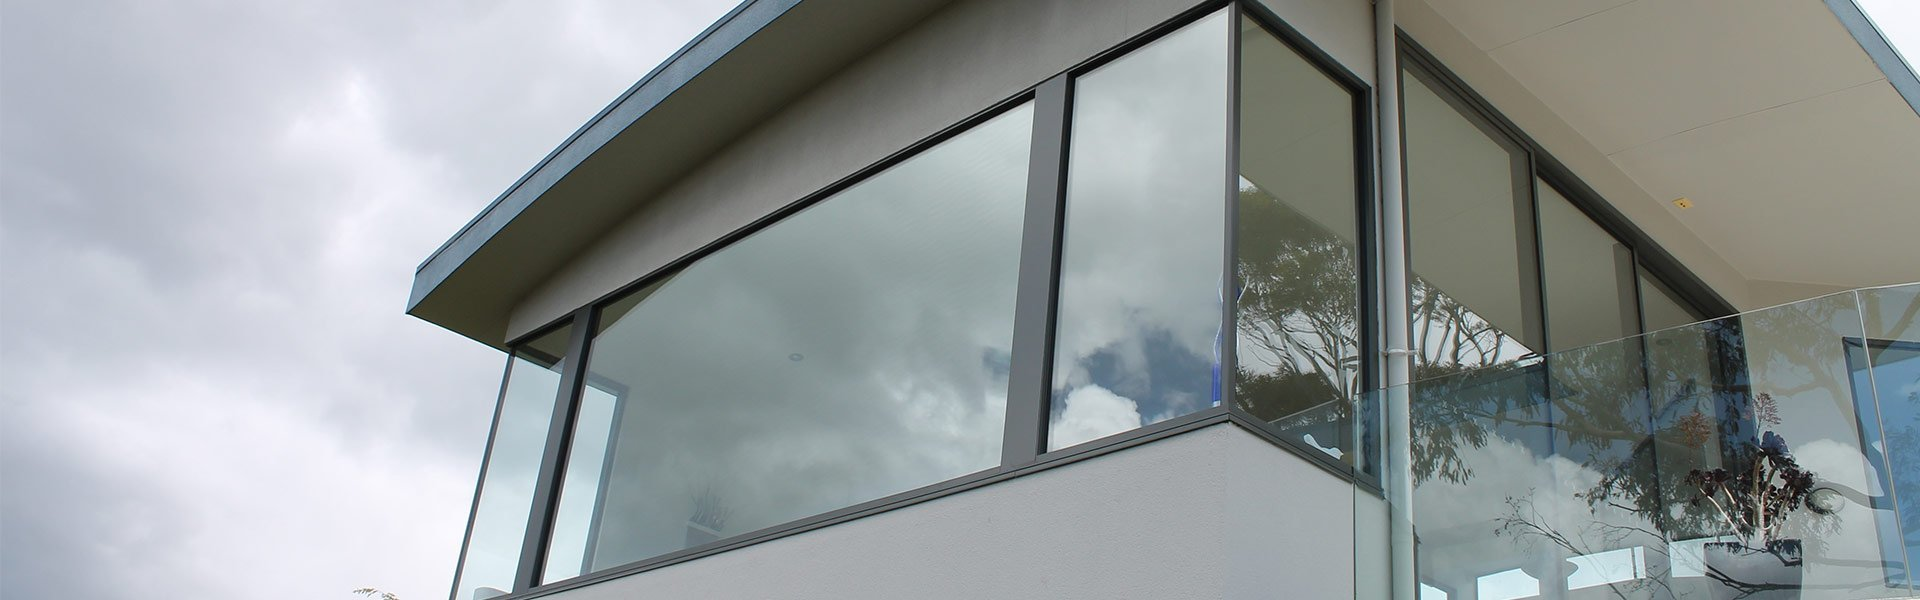 home balcony window and support on glass